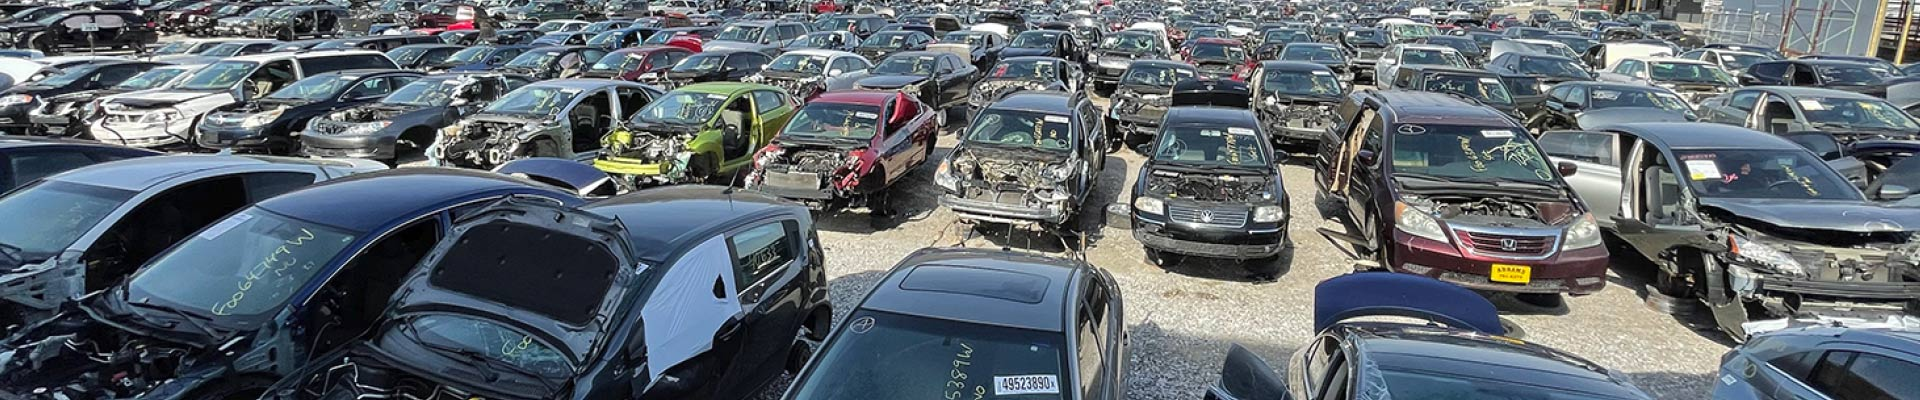 USED-AUTO PARTS INVENTORY